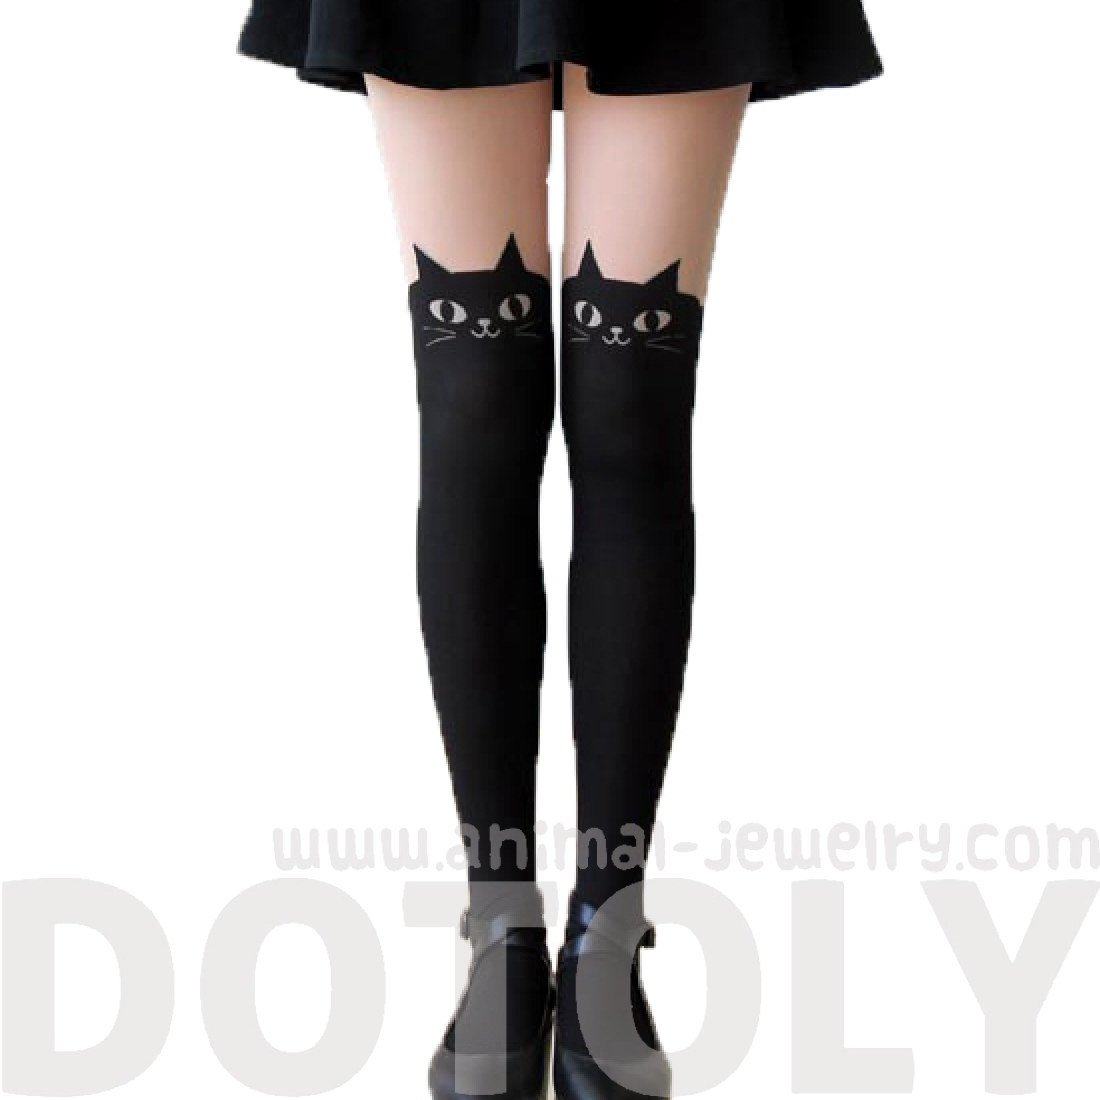 Cute Kitty Cat with Bow Tie Mock Thigh High Pantyhose Tights in Black